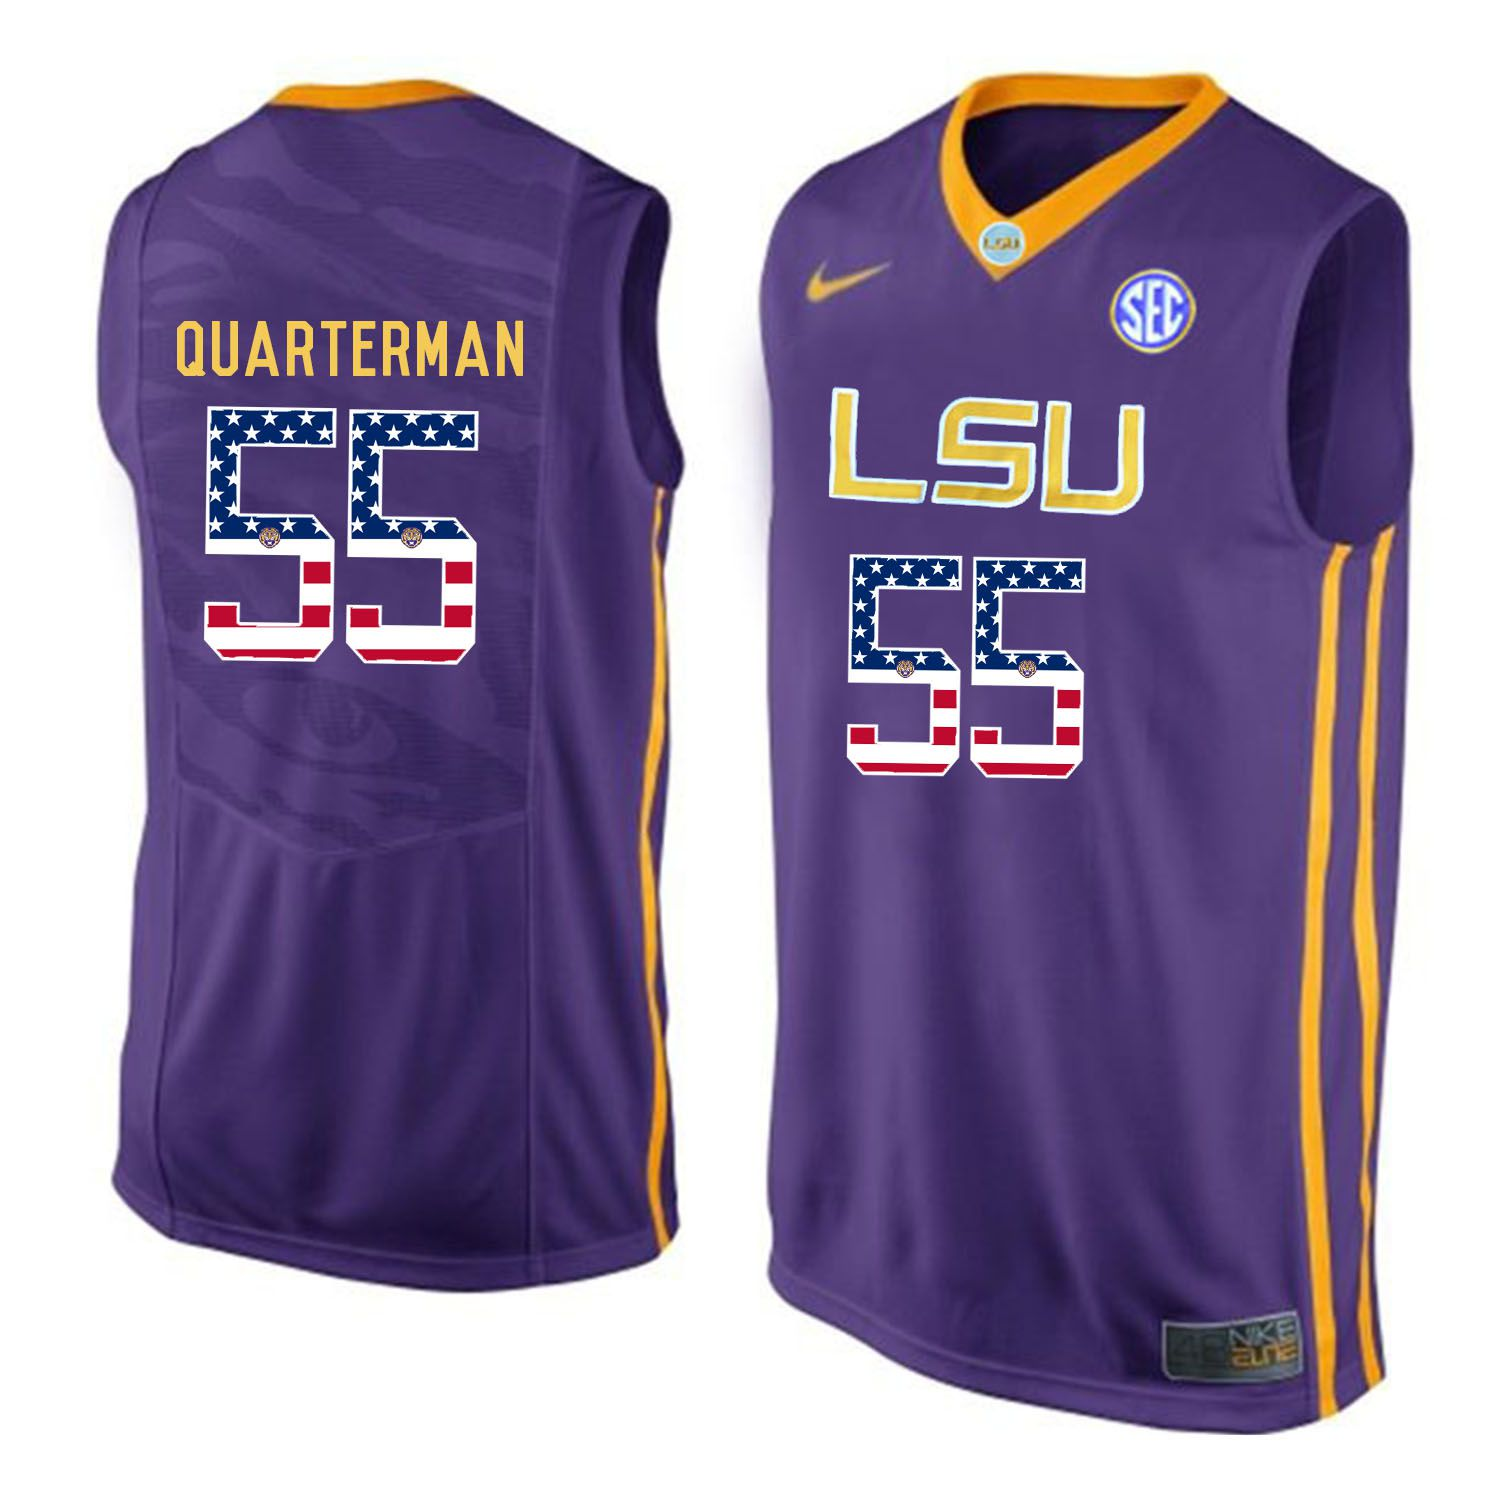 Men LSU Tigers 55 Quarterman Purple Flag Customized NCAA Jerseys